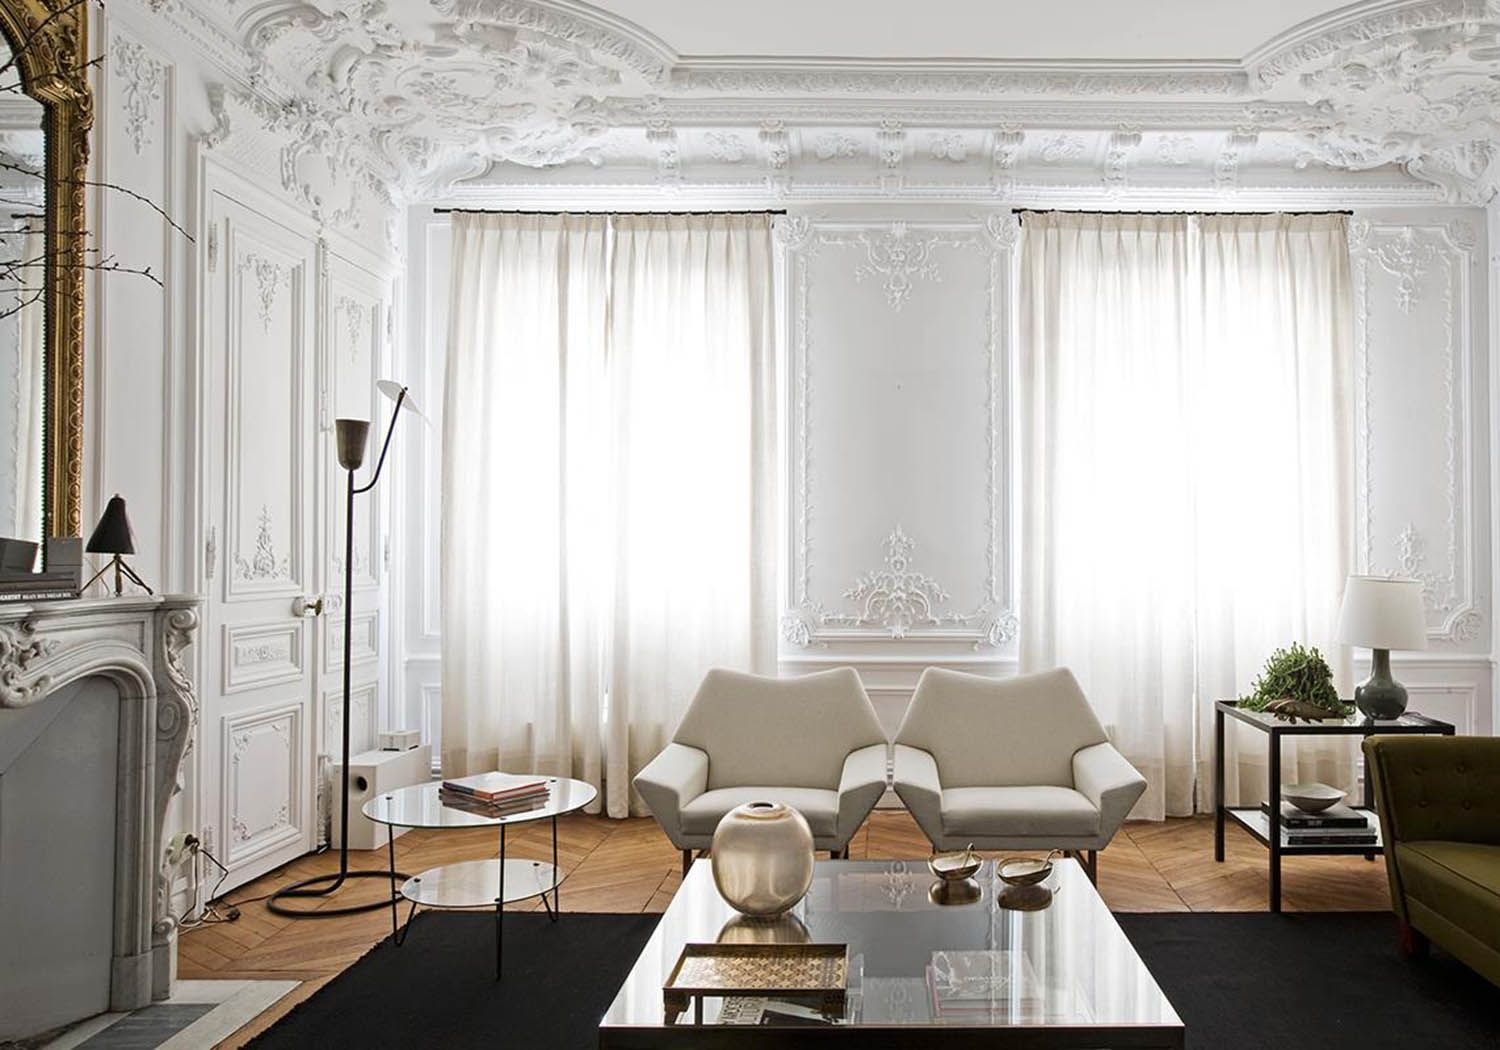 This Clean Modern Living Room With Traditional Style Walls And Ceiling Is Complete With Creamy A Parisian Interior French Bedroom Decor French Interior Design